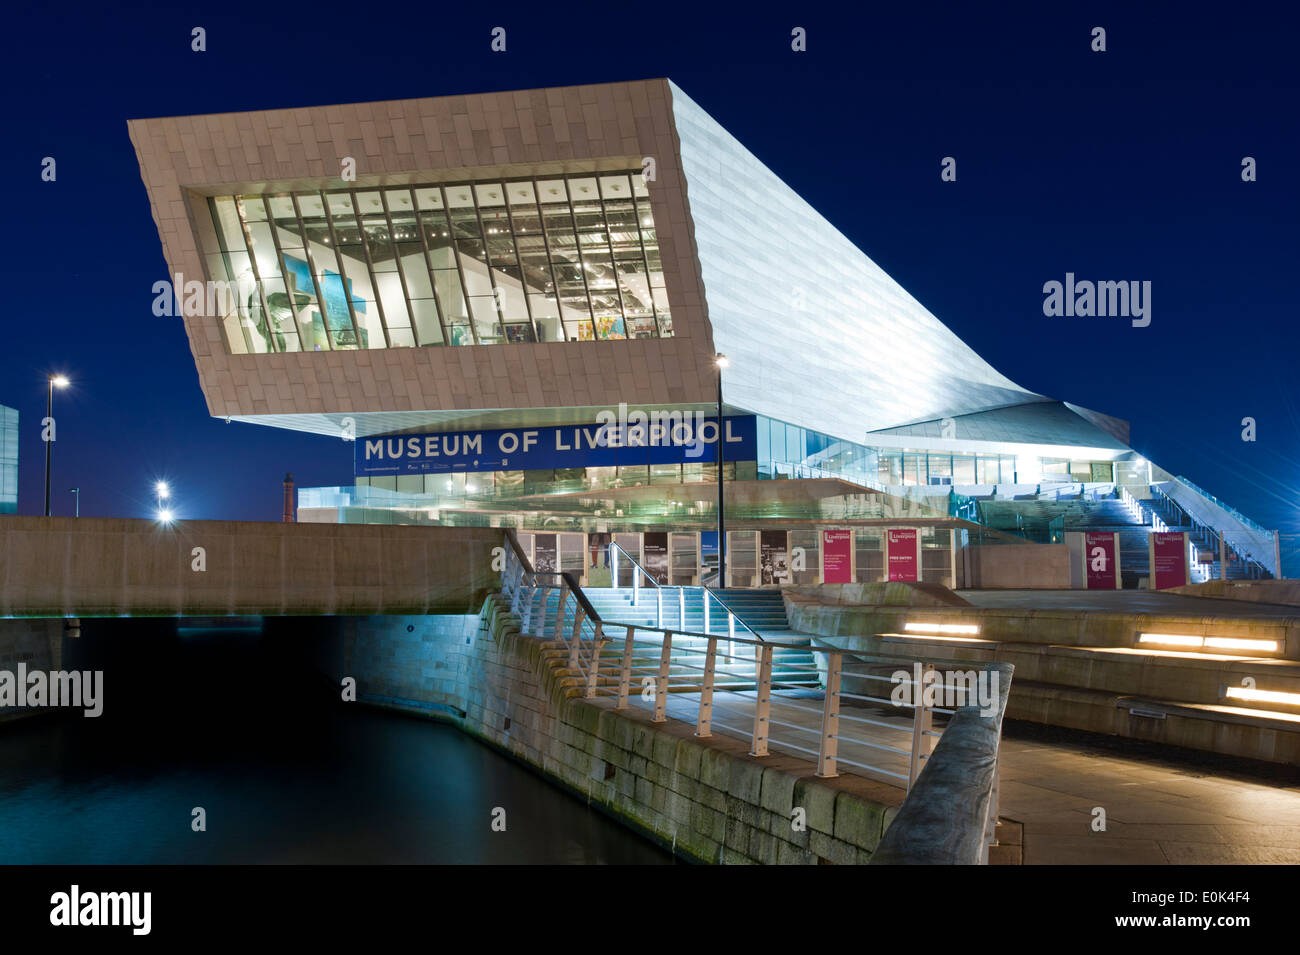 The Museum of Liverpool at Night, The Pier Head, Liverpool Waterfront, Liverpool, Merseyside, England, UK - Stock Image